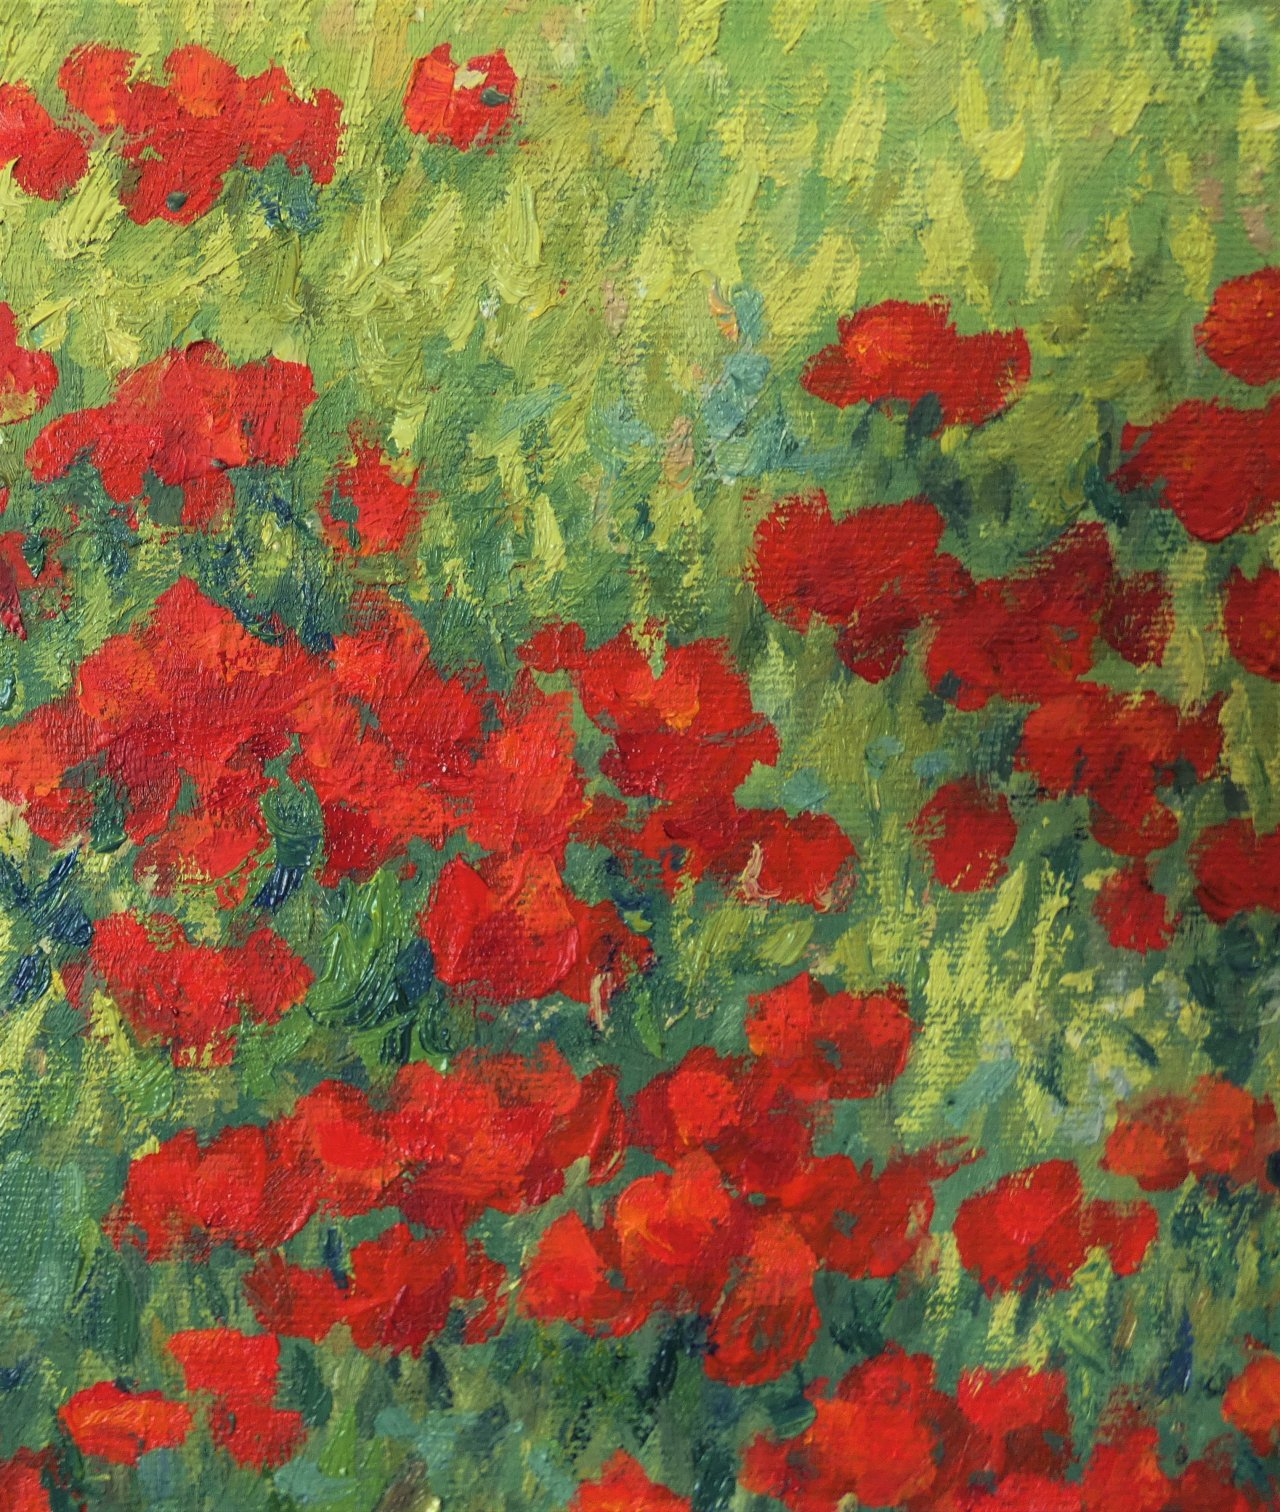 My painting is about spring, spring is about flowers, strong colors and joy